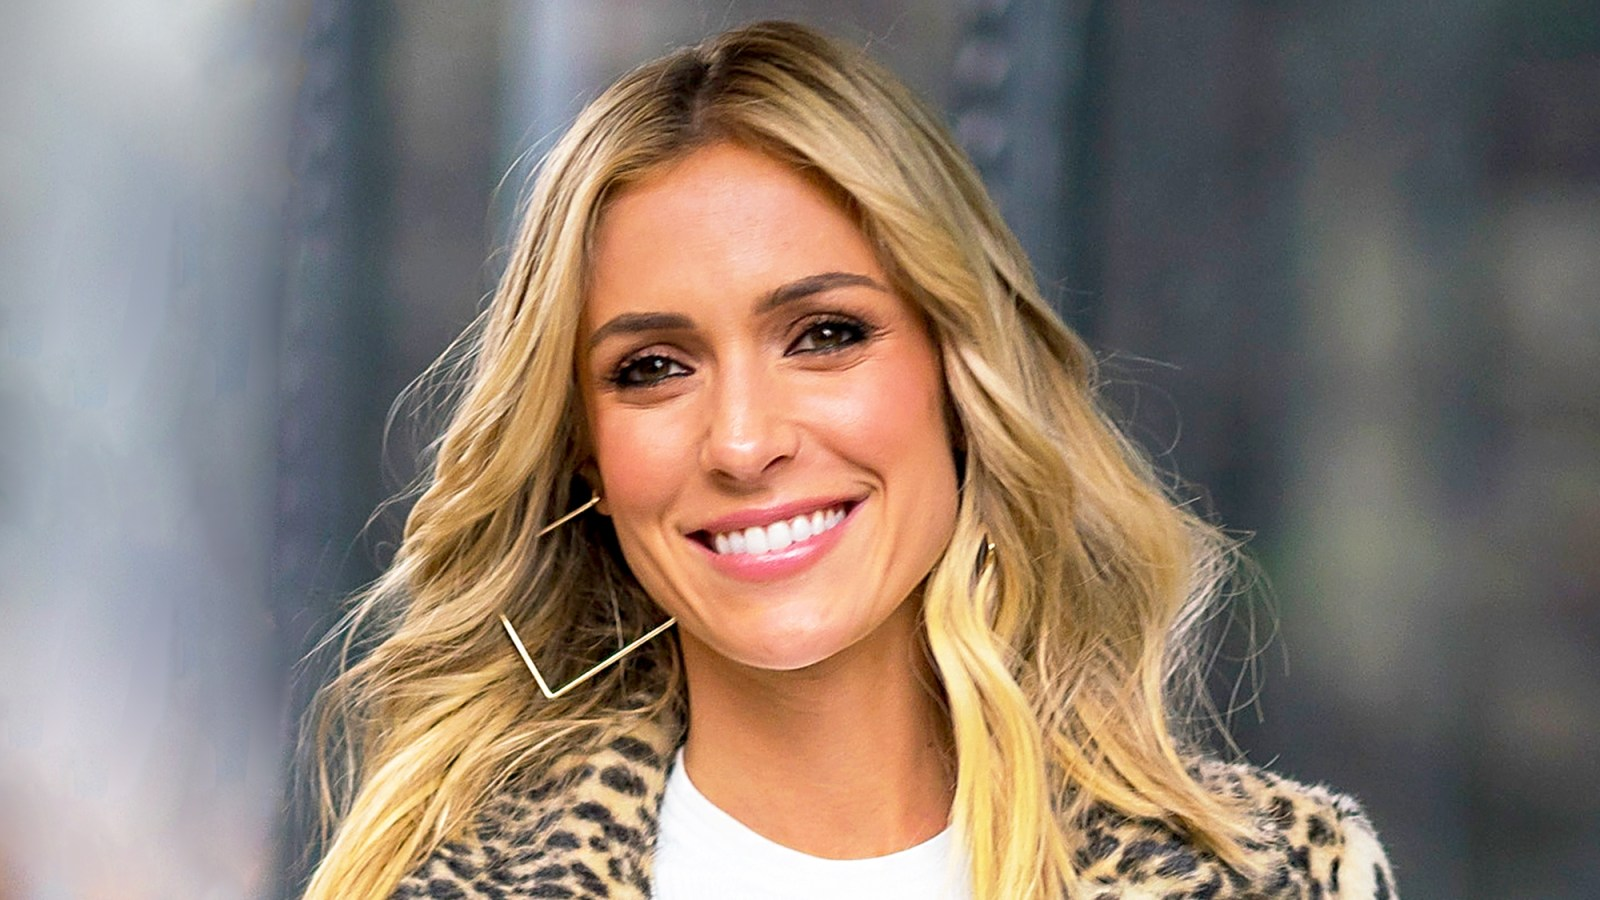 80c1b3b01cf937 Kristin Cavallari's New Reality Show Features Tension Between Her Employees  and Husband Jay Cutler